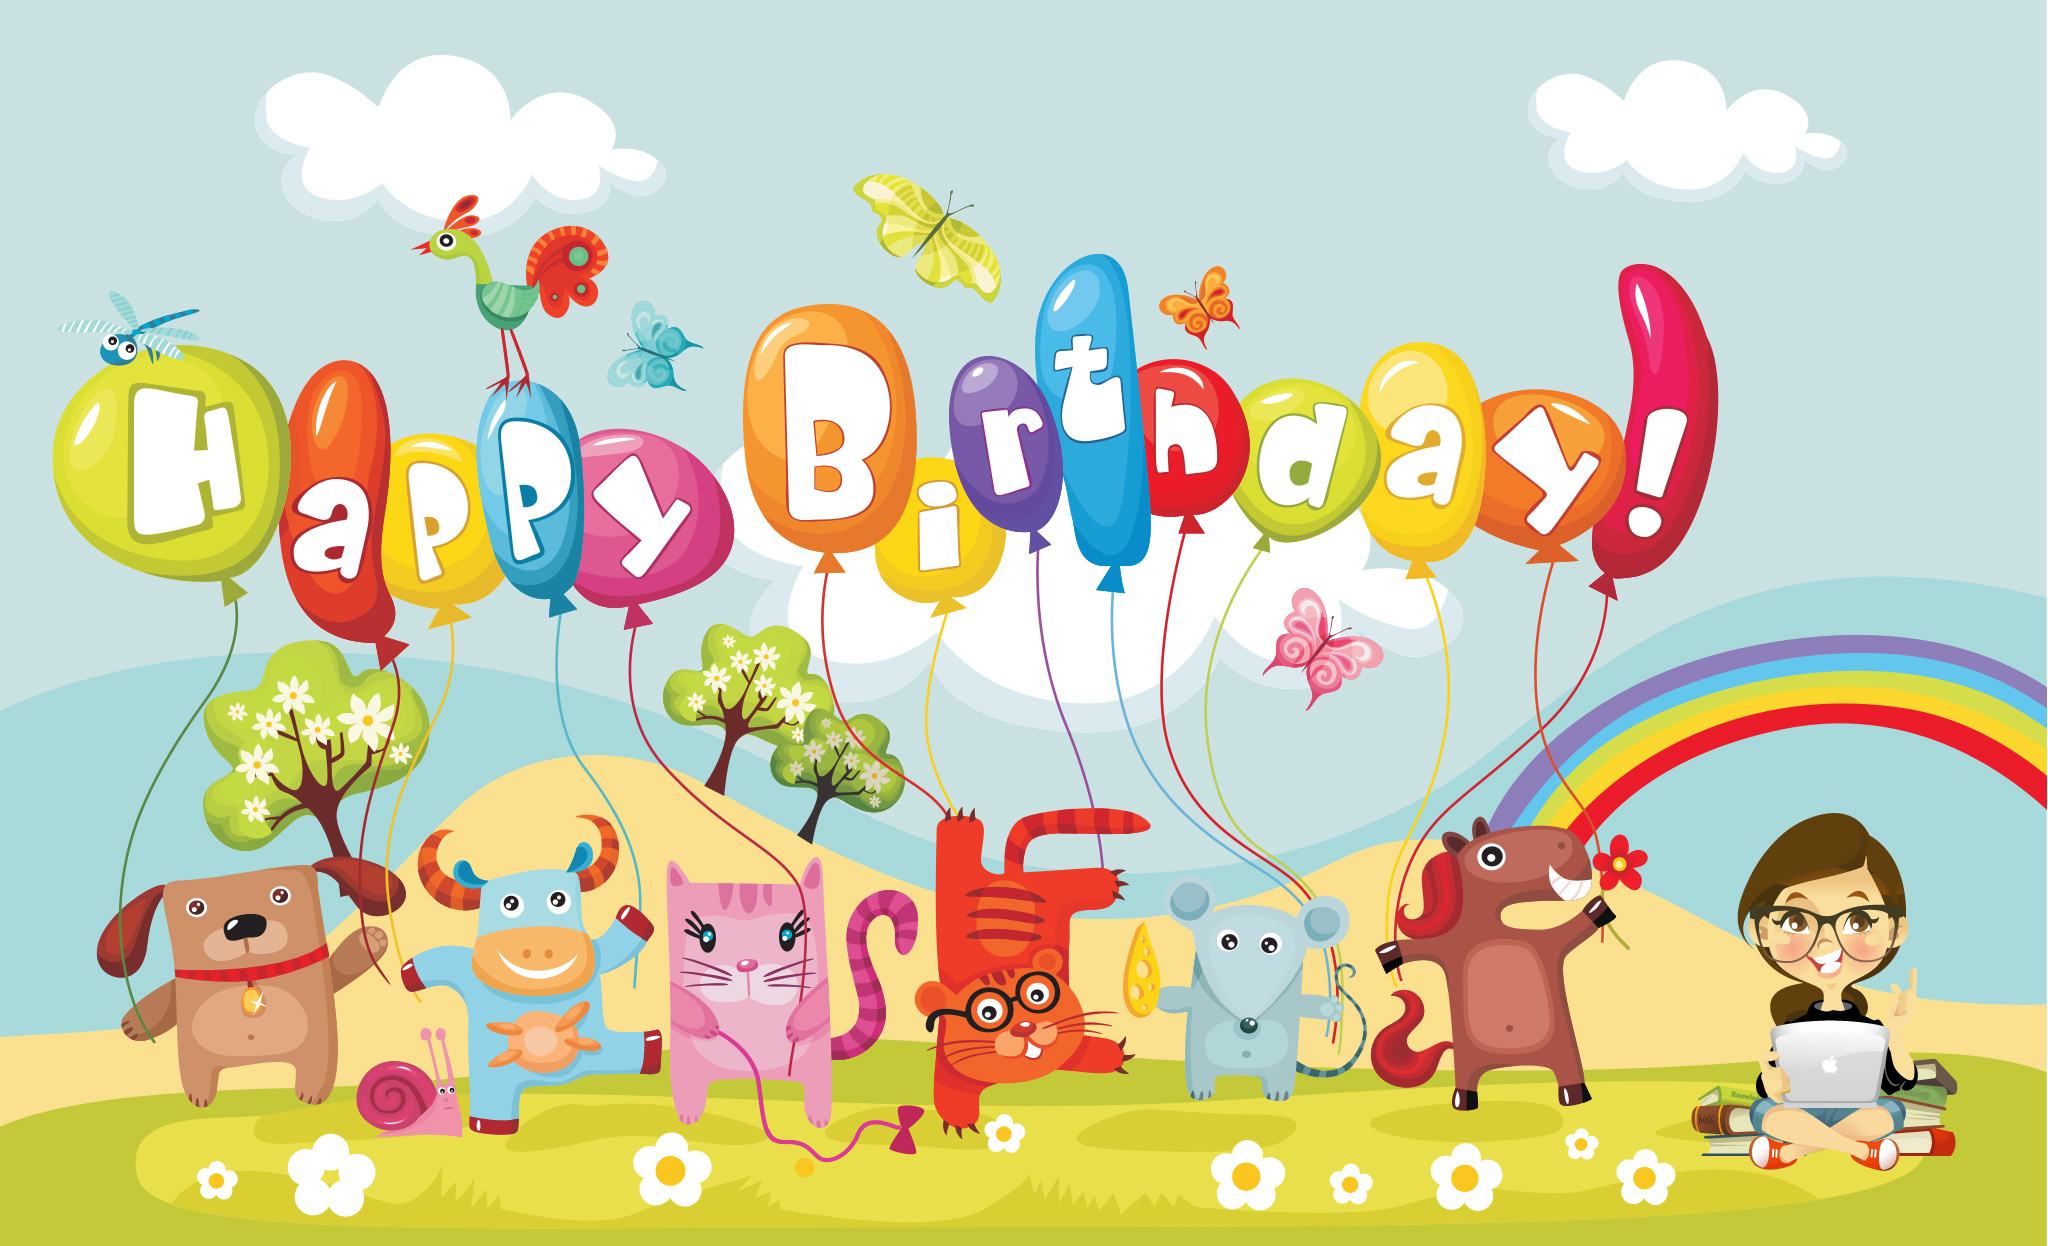 Free download Animated Images Of Happy Birthday Wallpaper HD Base  [2048x1246] for your Desktop, Mobile & Tablet | Explore 49+ Animated Happy  Birthday Wallpapers | Happy Birthday Wallpaper Images, Happy Birthday  Wallpaper,